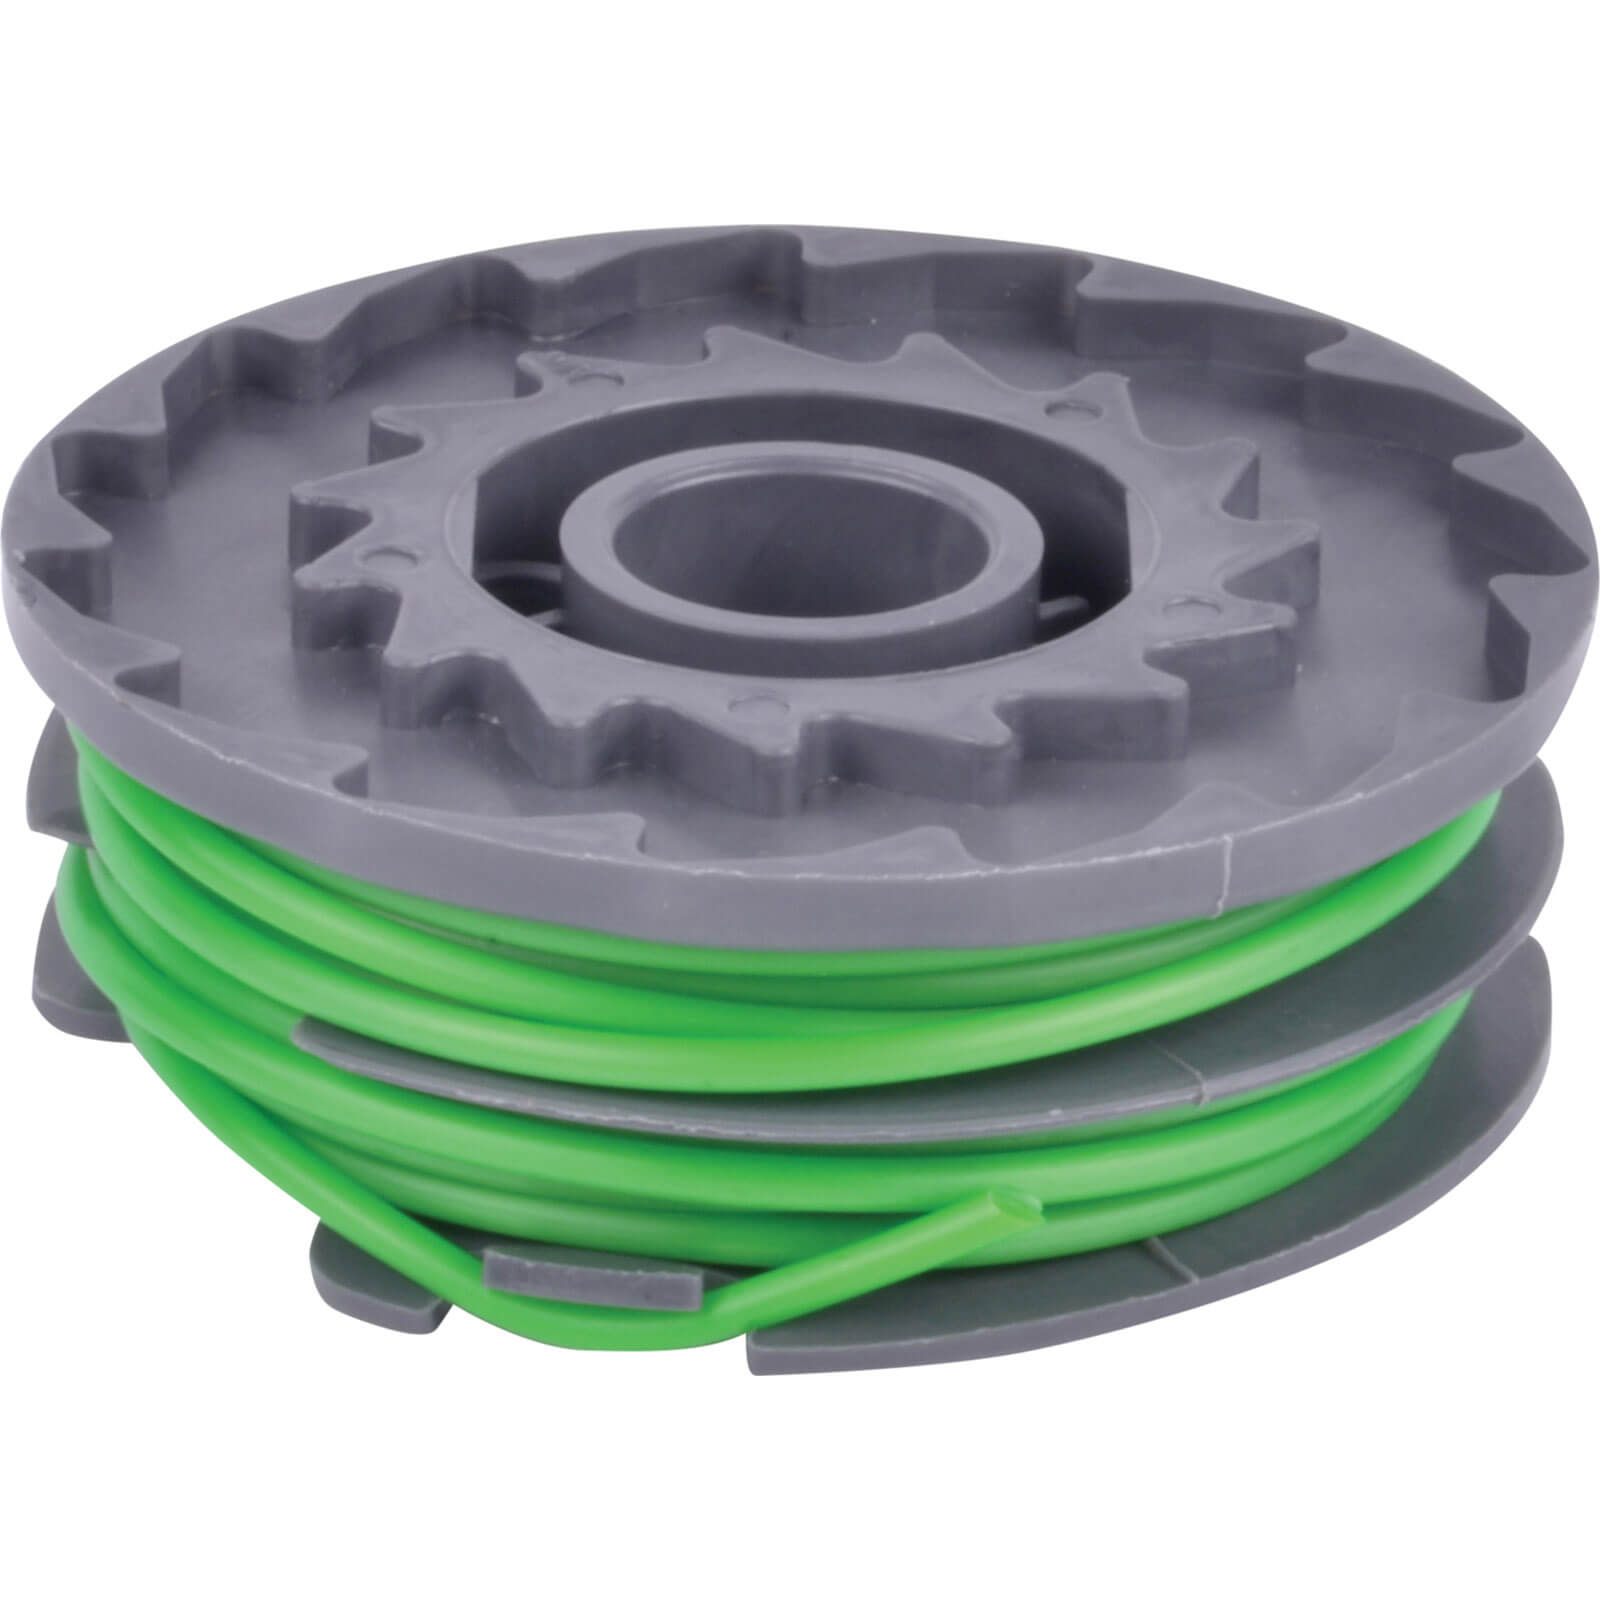 Image of ALM 2mm x 3m Spool & Line for Flymo Grass Trimmers Pack of 1